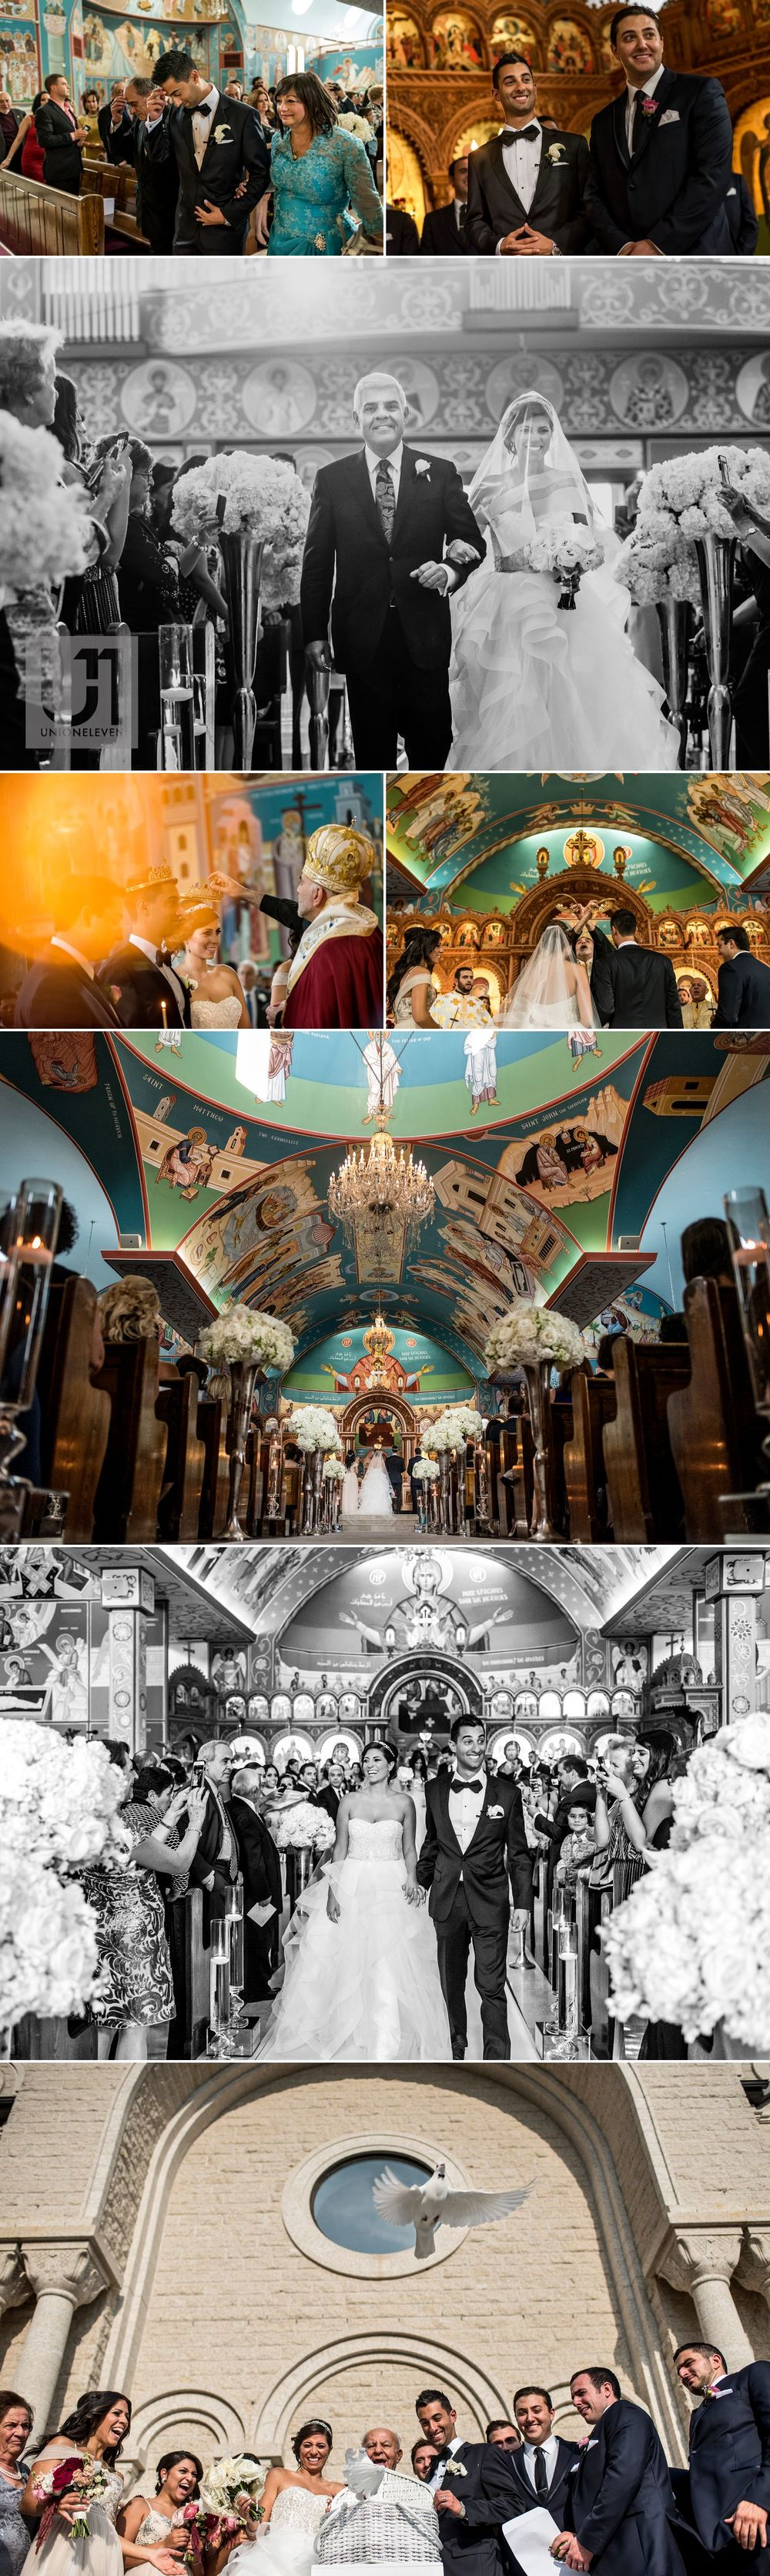 lebanese wedding ceremony at the st elias antiochian orthodox cathedral in ottawa ontario